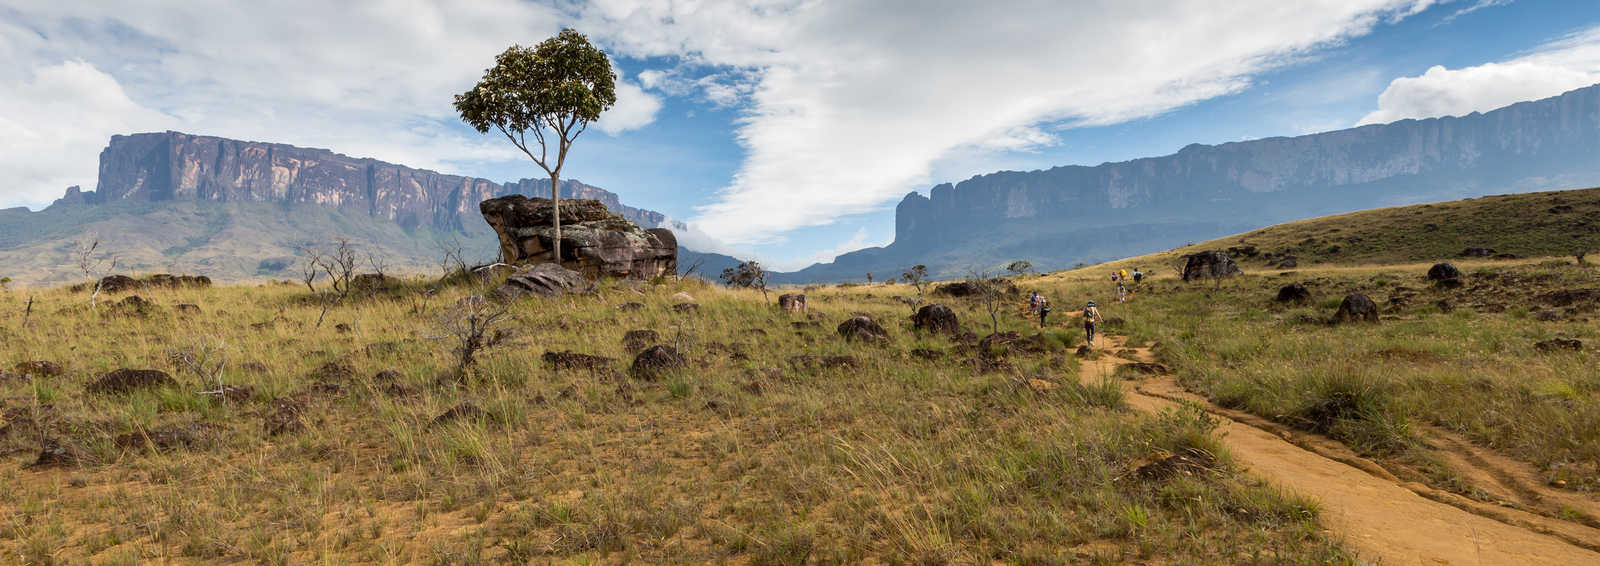 Trek to Roraima